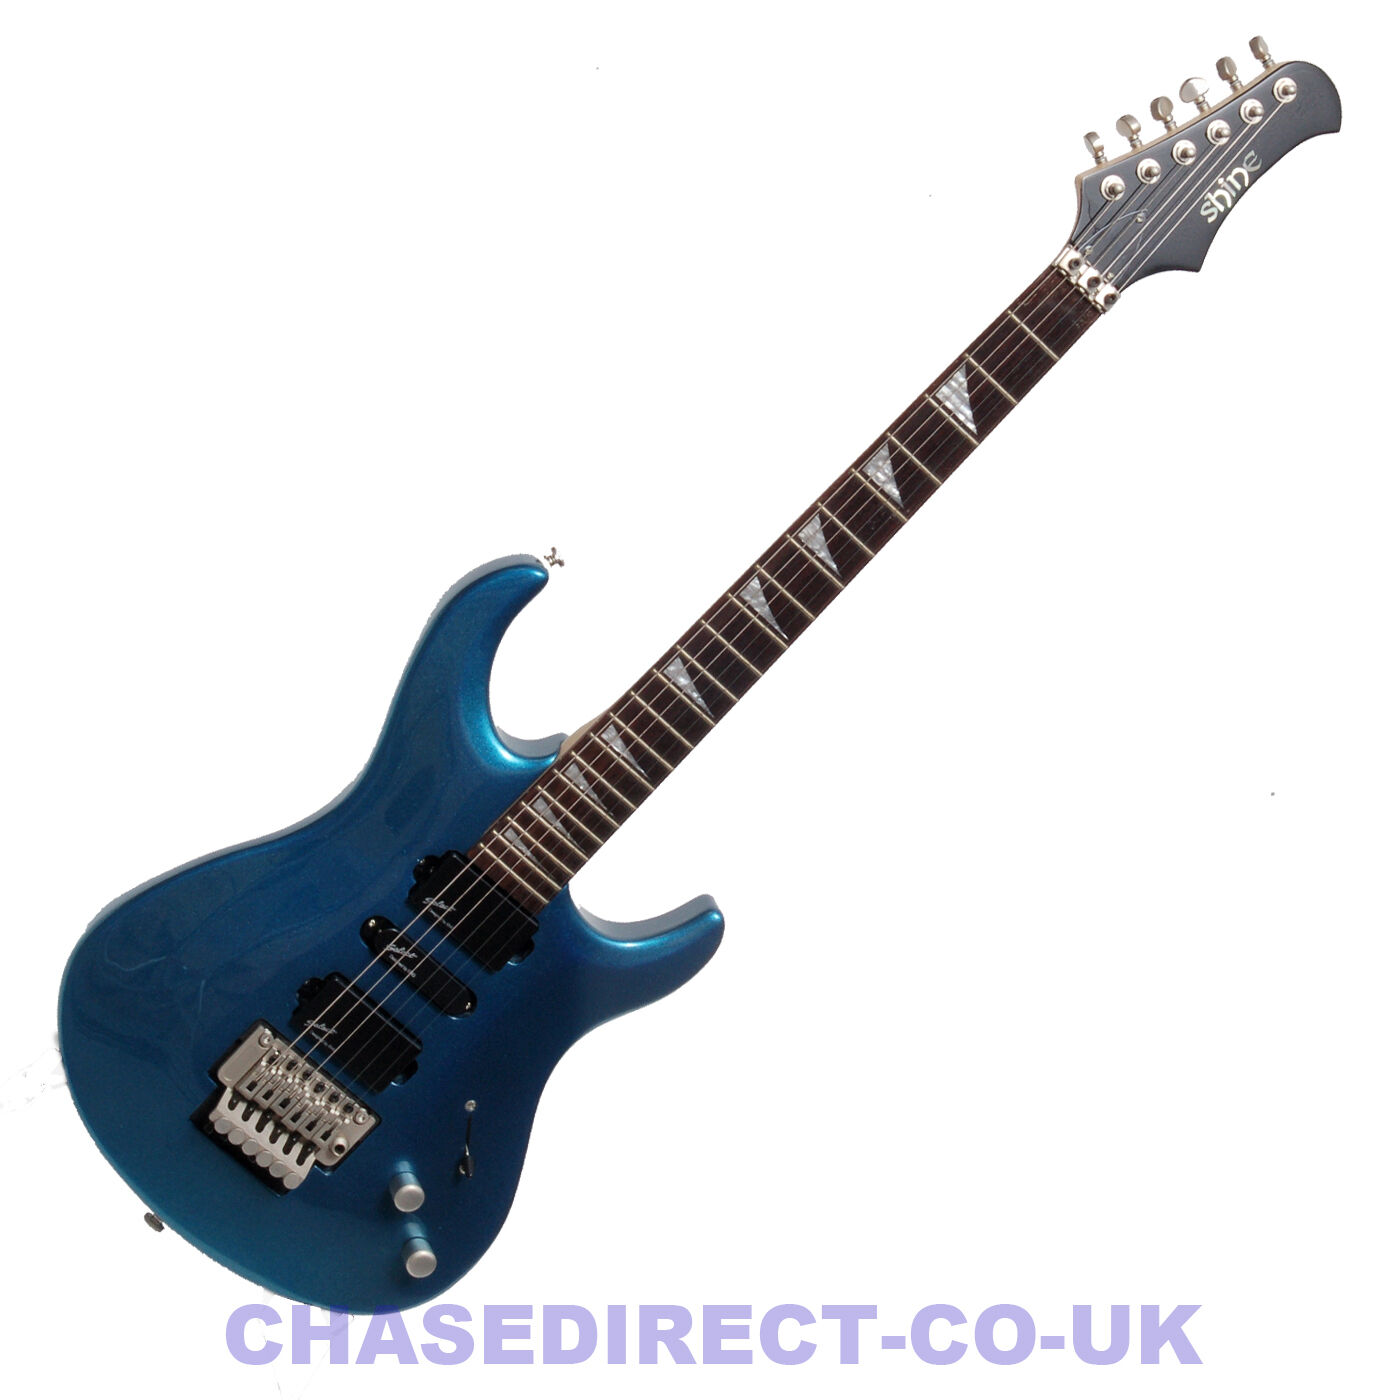 SHINE Electric Guitar SIL405MB Floyd Rose Tremolo Metallic Blau Grover Tuners s